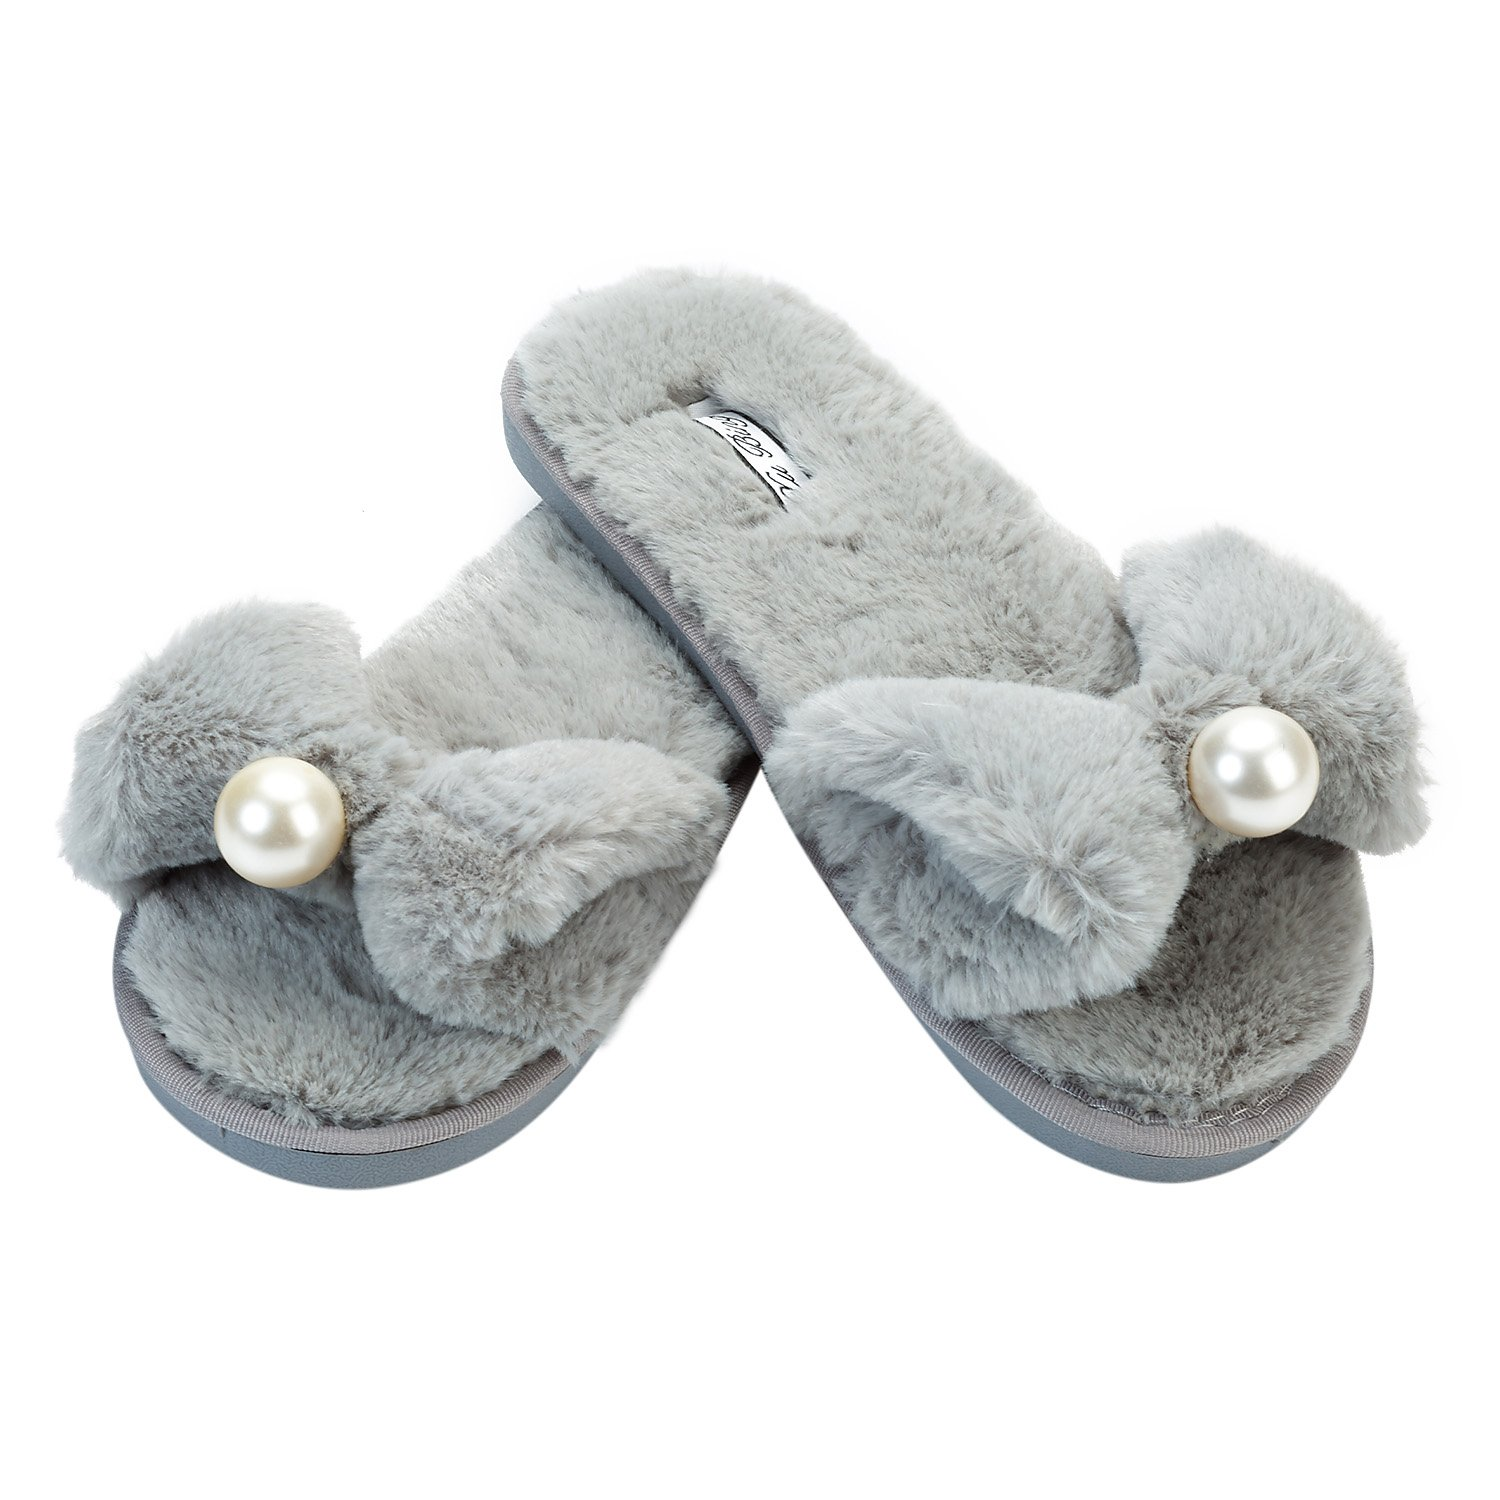 JOINFREE Grey JF-826, Chaussons pour Femme 14276 36.5 JOINFREE Pearl_light Grey 1342407 - fast-weightloss-diet.space